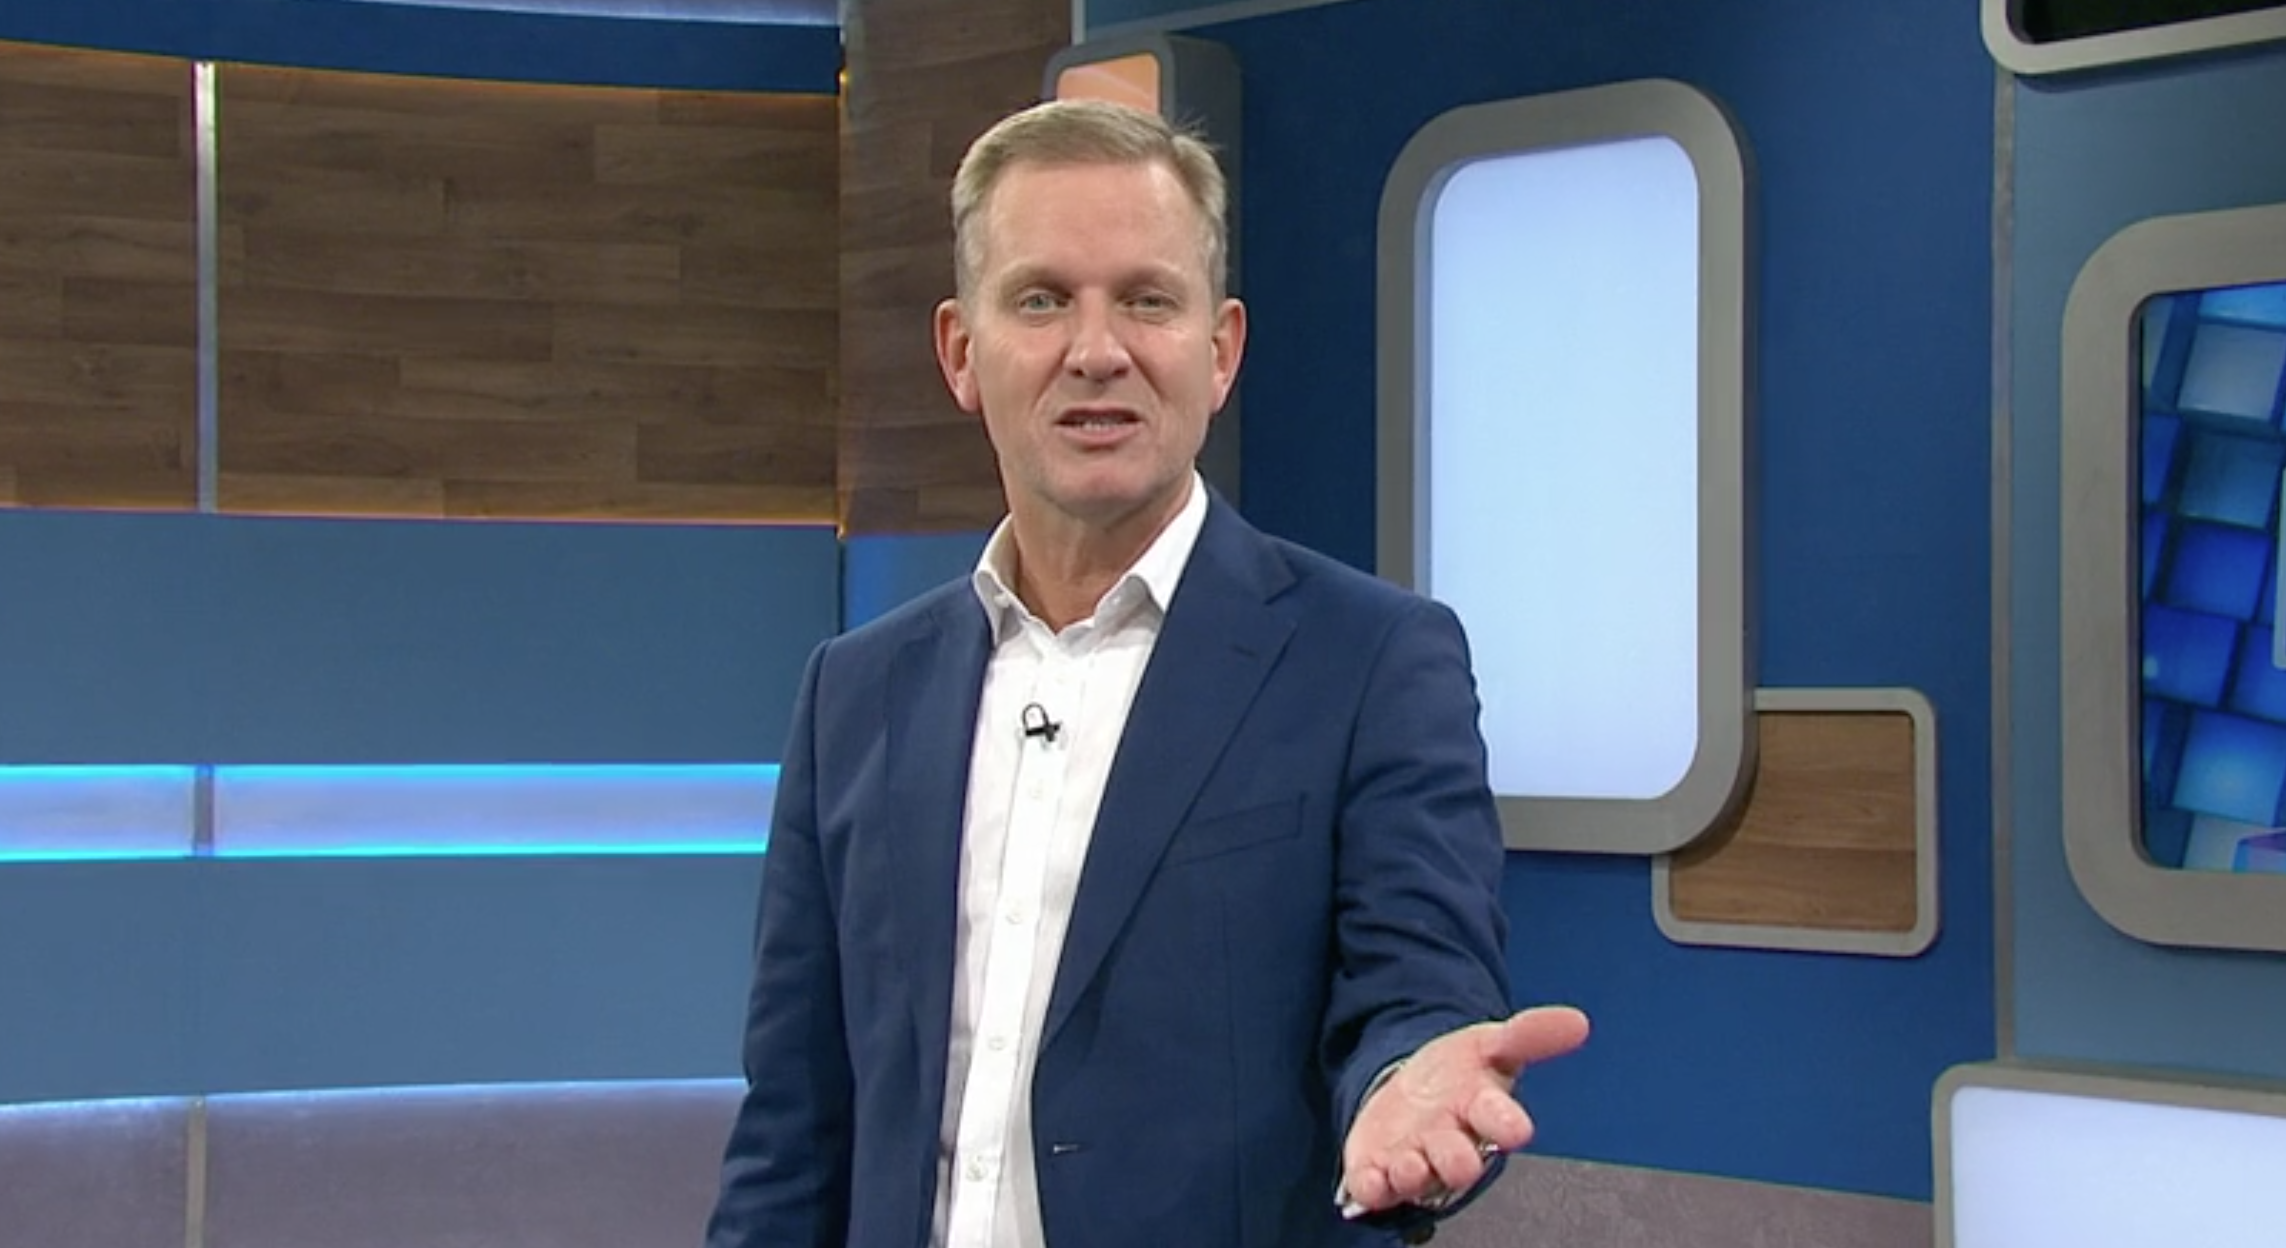 The Jeremy Kyle Show         All episodes of The Jeremy Kyle Show pulled from ITV Hub     A guest has died after filming for the show